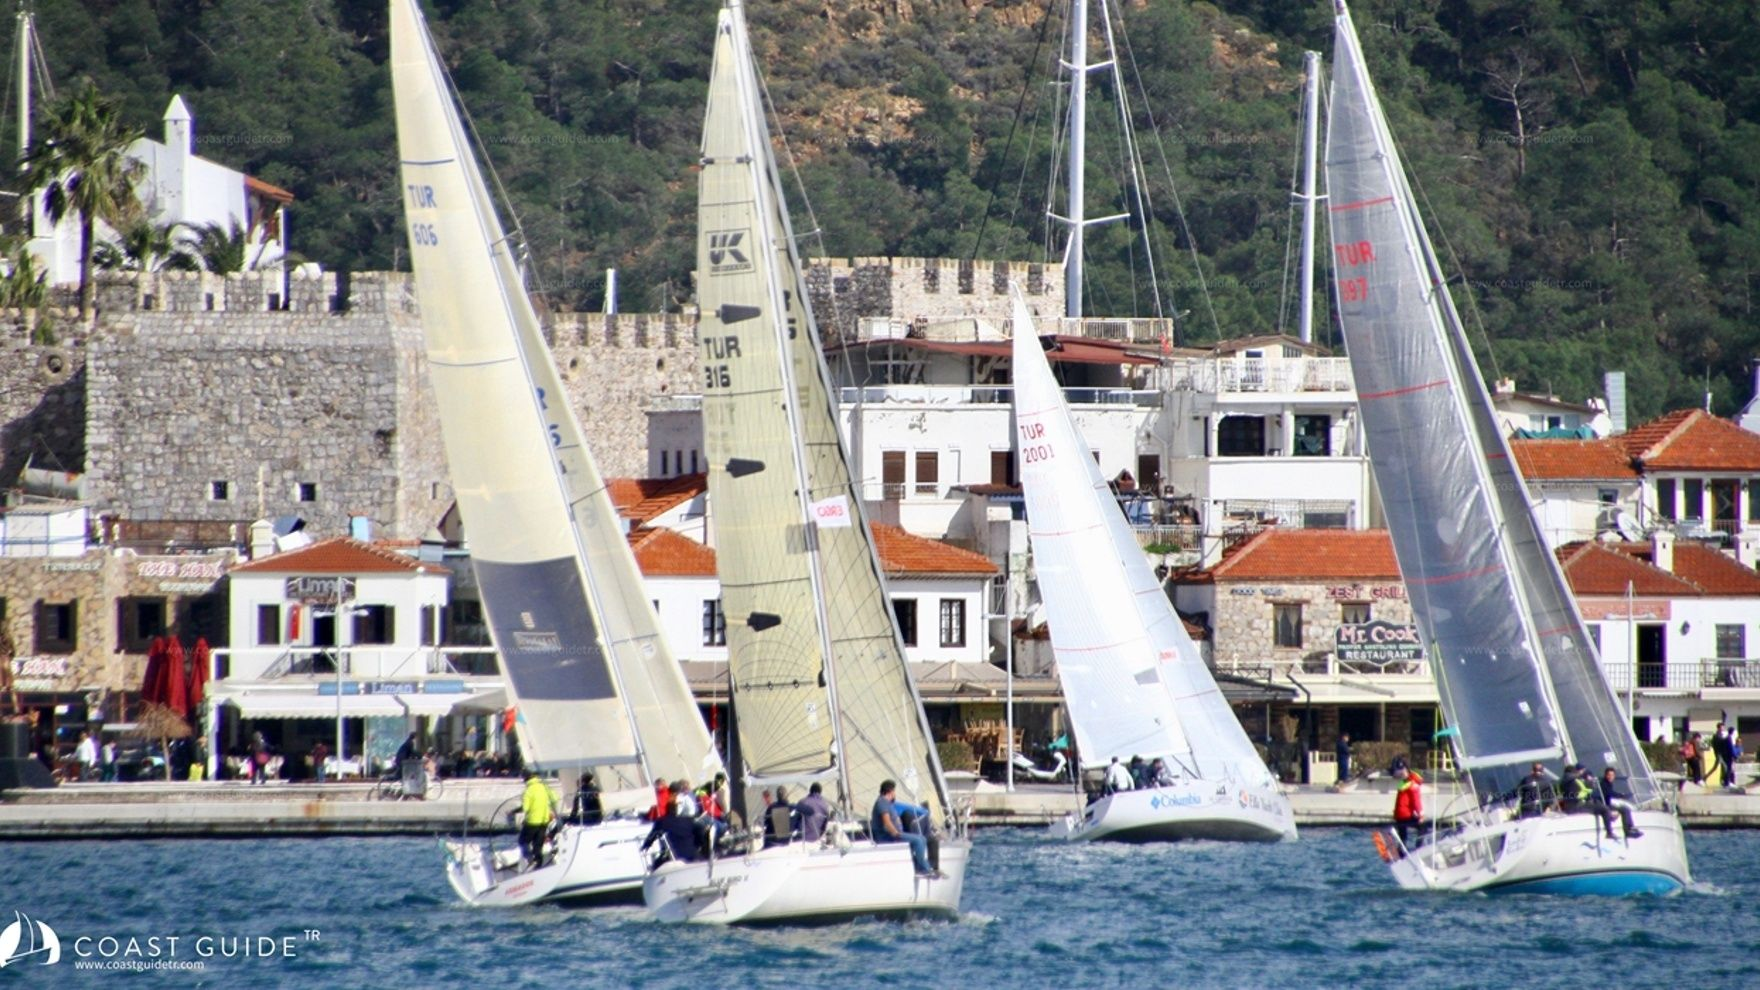 Marmaris Winter Trophy 2020-2021